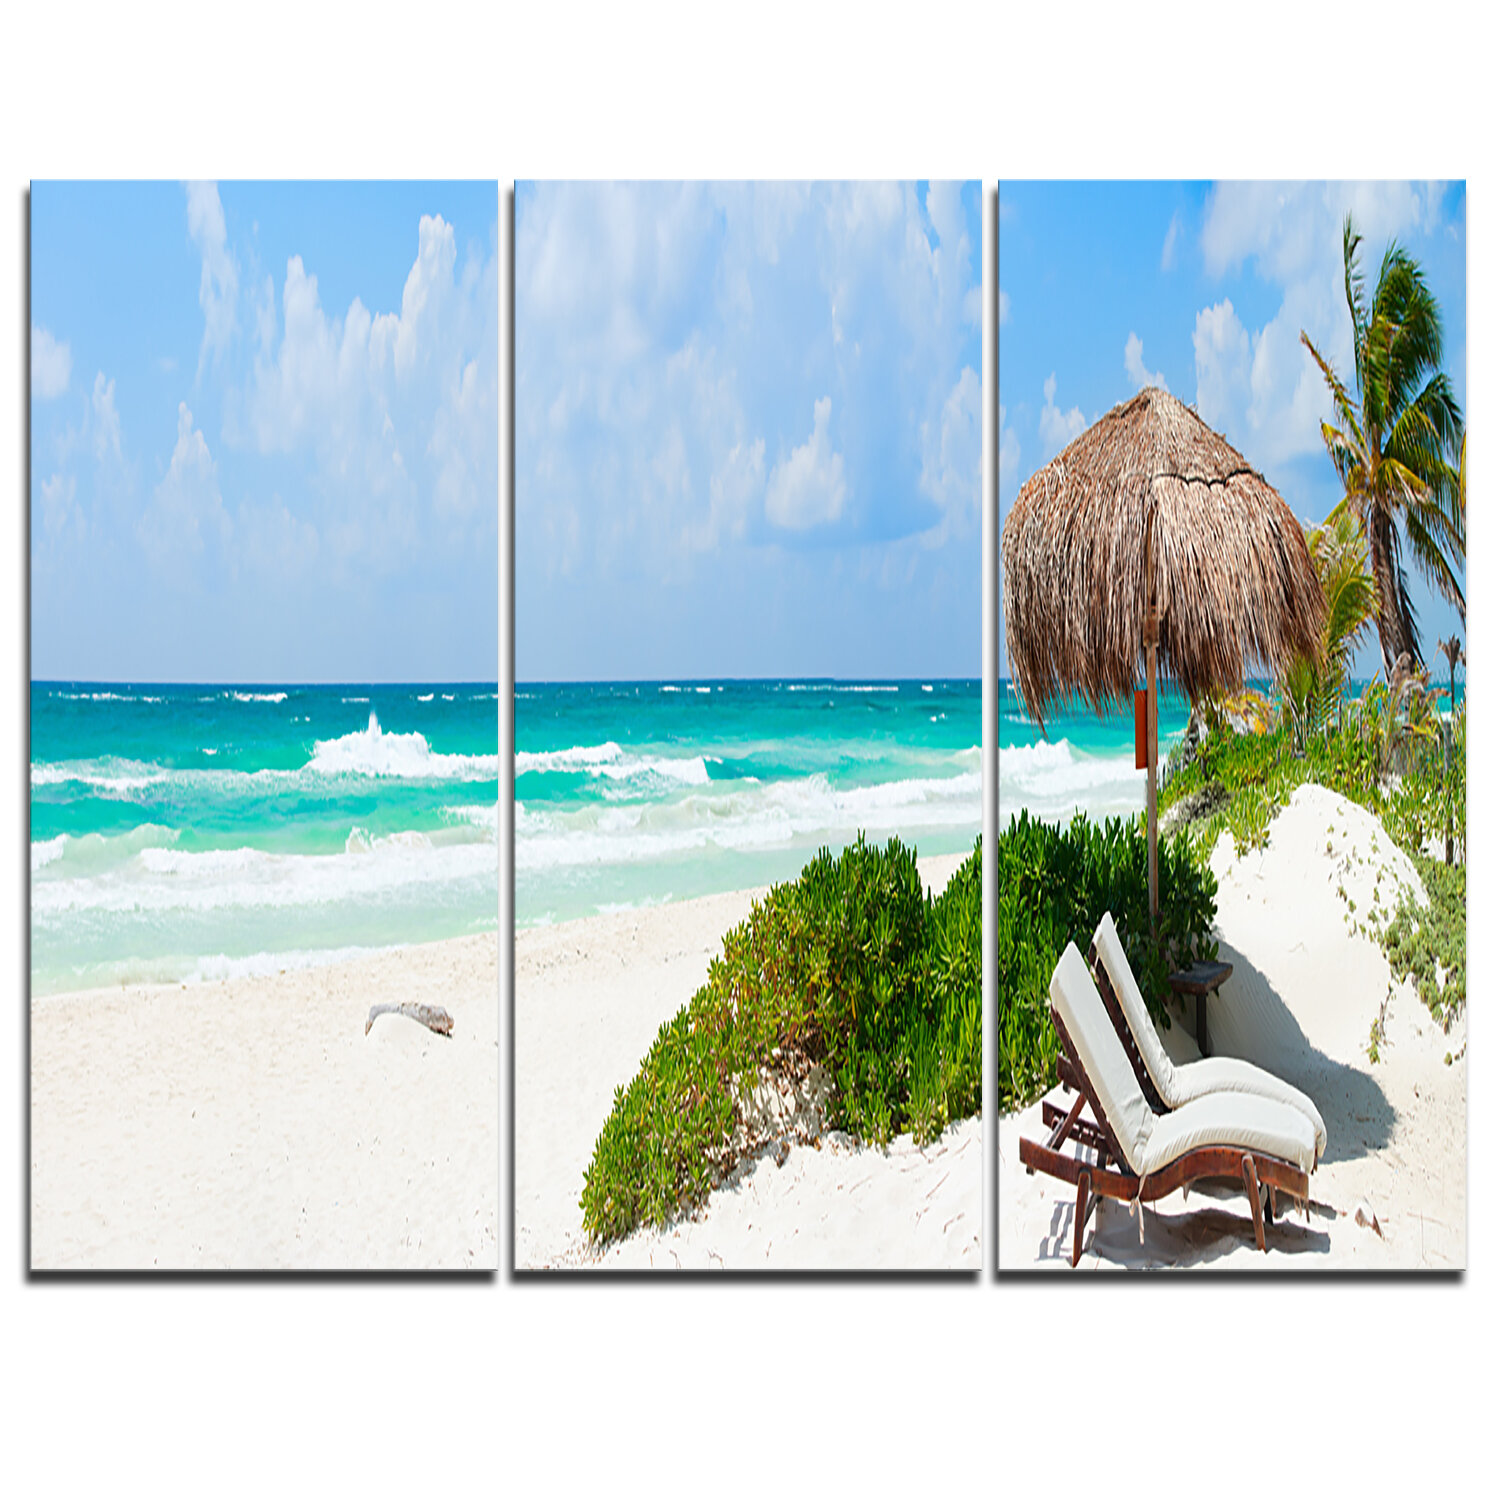 Designart Calm Caribbean Beach Panorama 3 Piece Graphic Art On Wrapped Canvas Set Wayfair